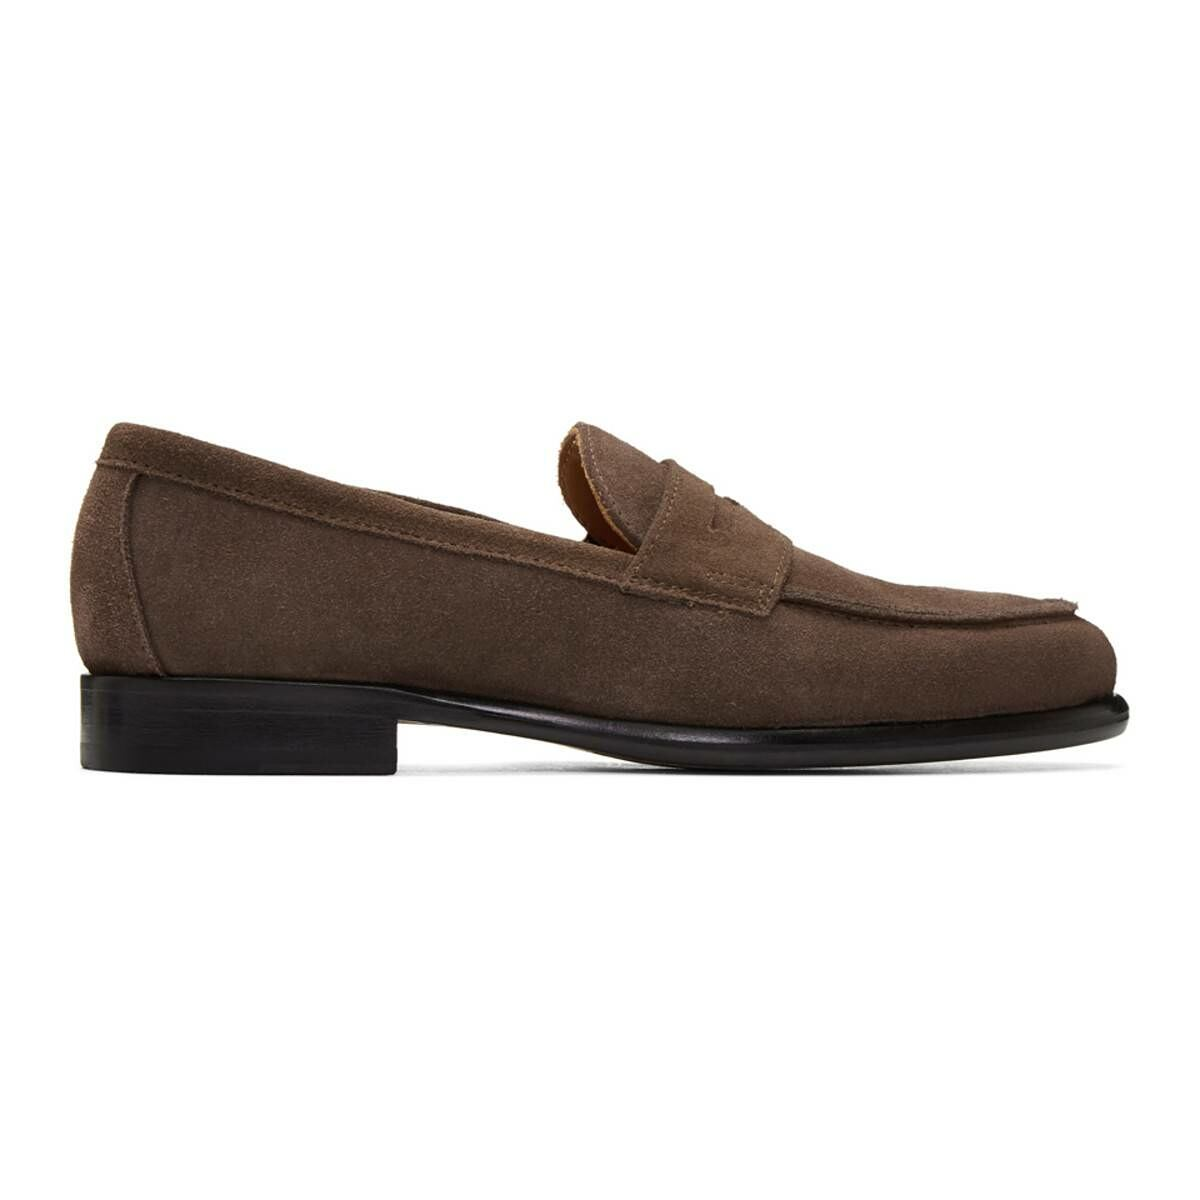 Officine Generale Brown Suede Mika Penny Loafers Ssense USA MEN Men SHOES Mens LOAFERS